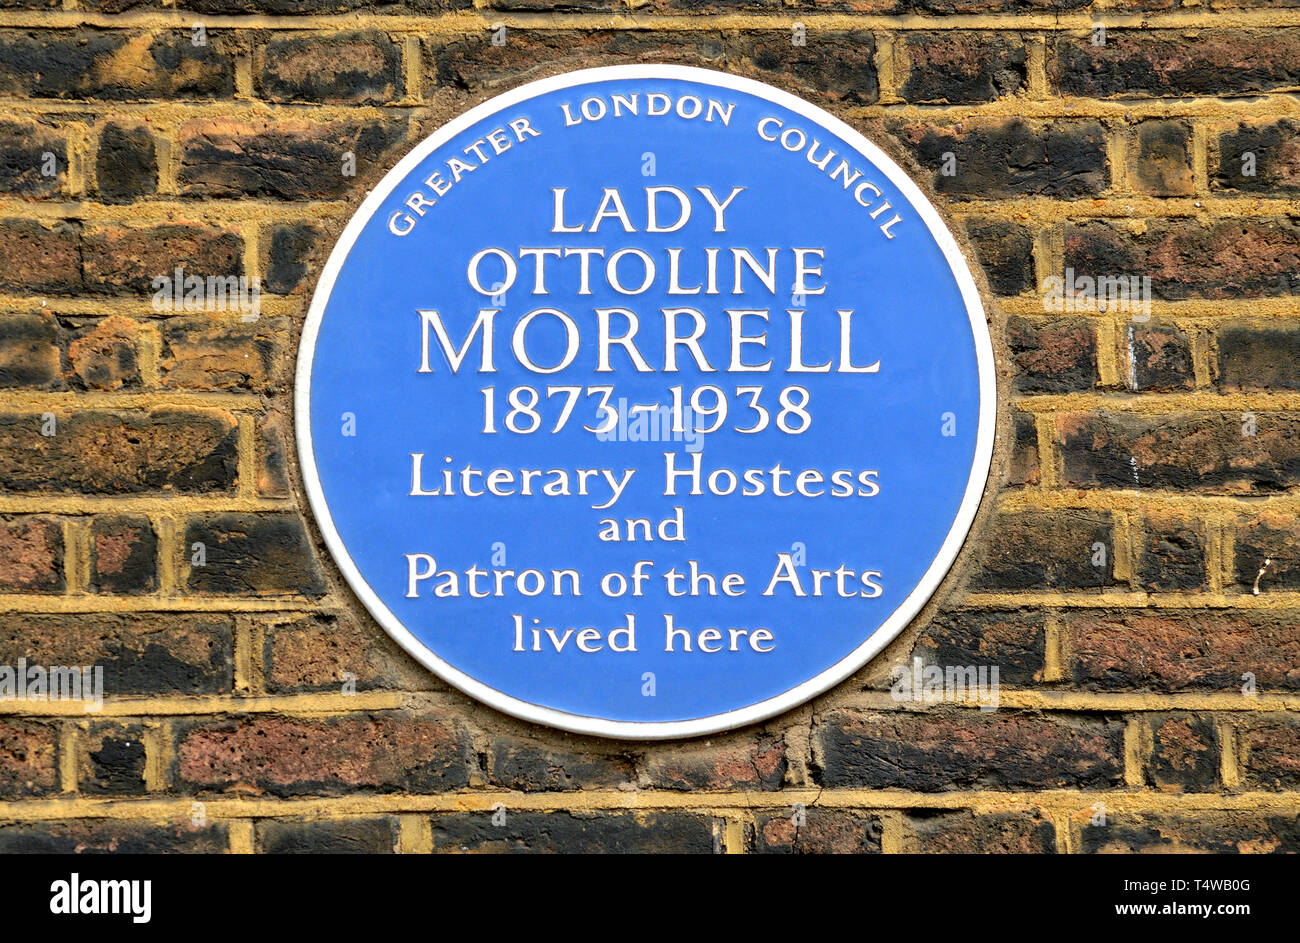 London, England, UK. Commemorative Blue Plaque: LADY OTTOLINE MORRELL (1873-1938) Literary Hostess and Patron of the Arts lived here. 10 Gower Street, - Stock Image